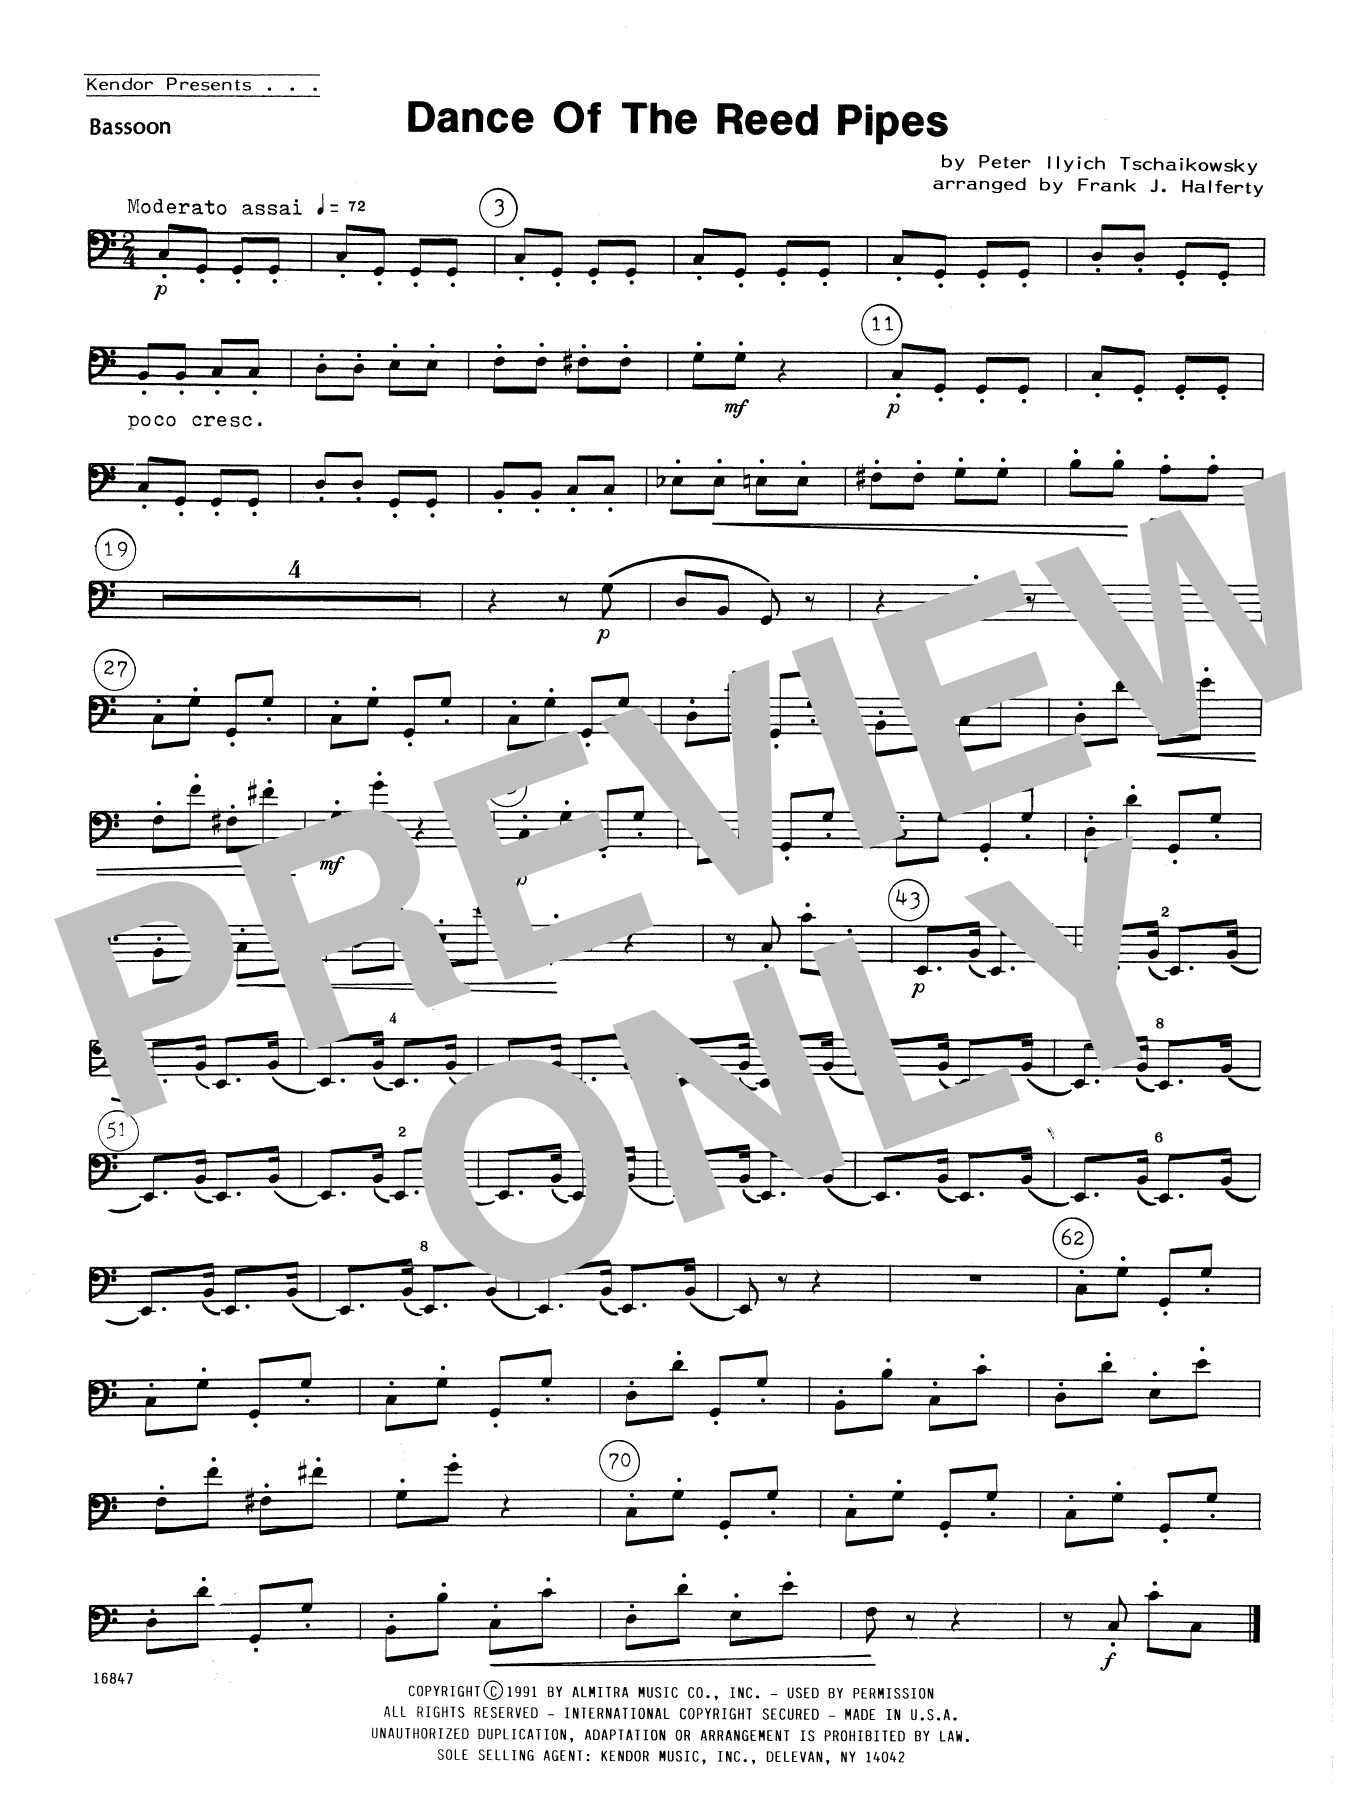 Dance Of The Reed Pipes - Bassoon Sheet Music